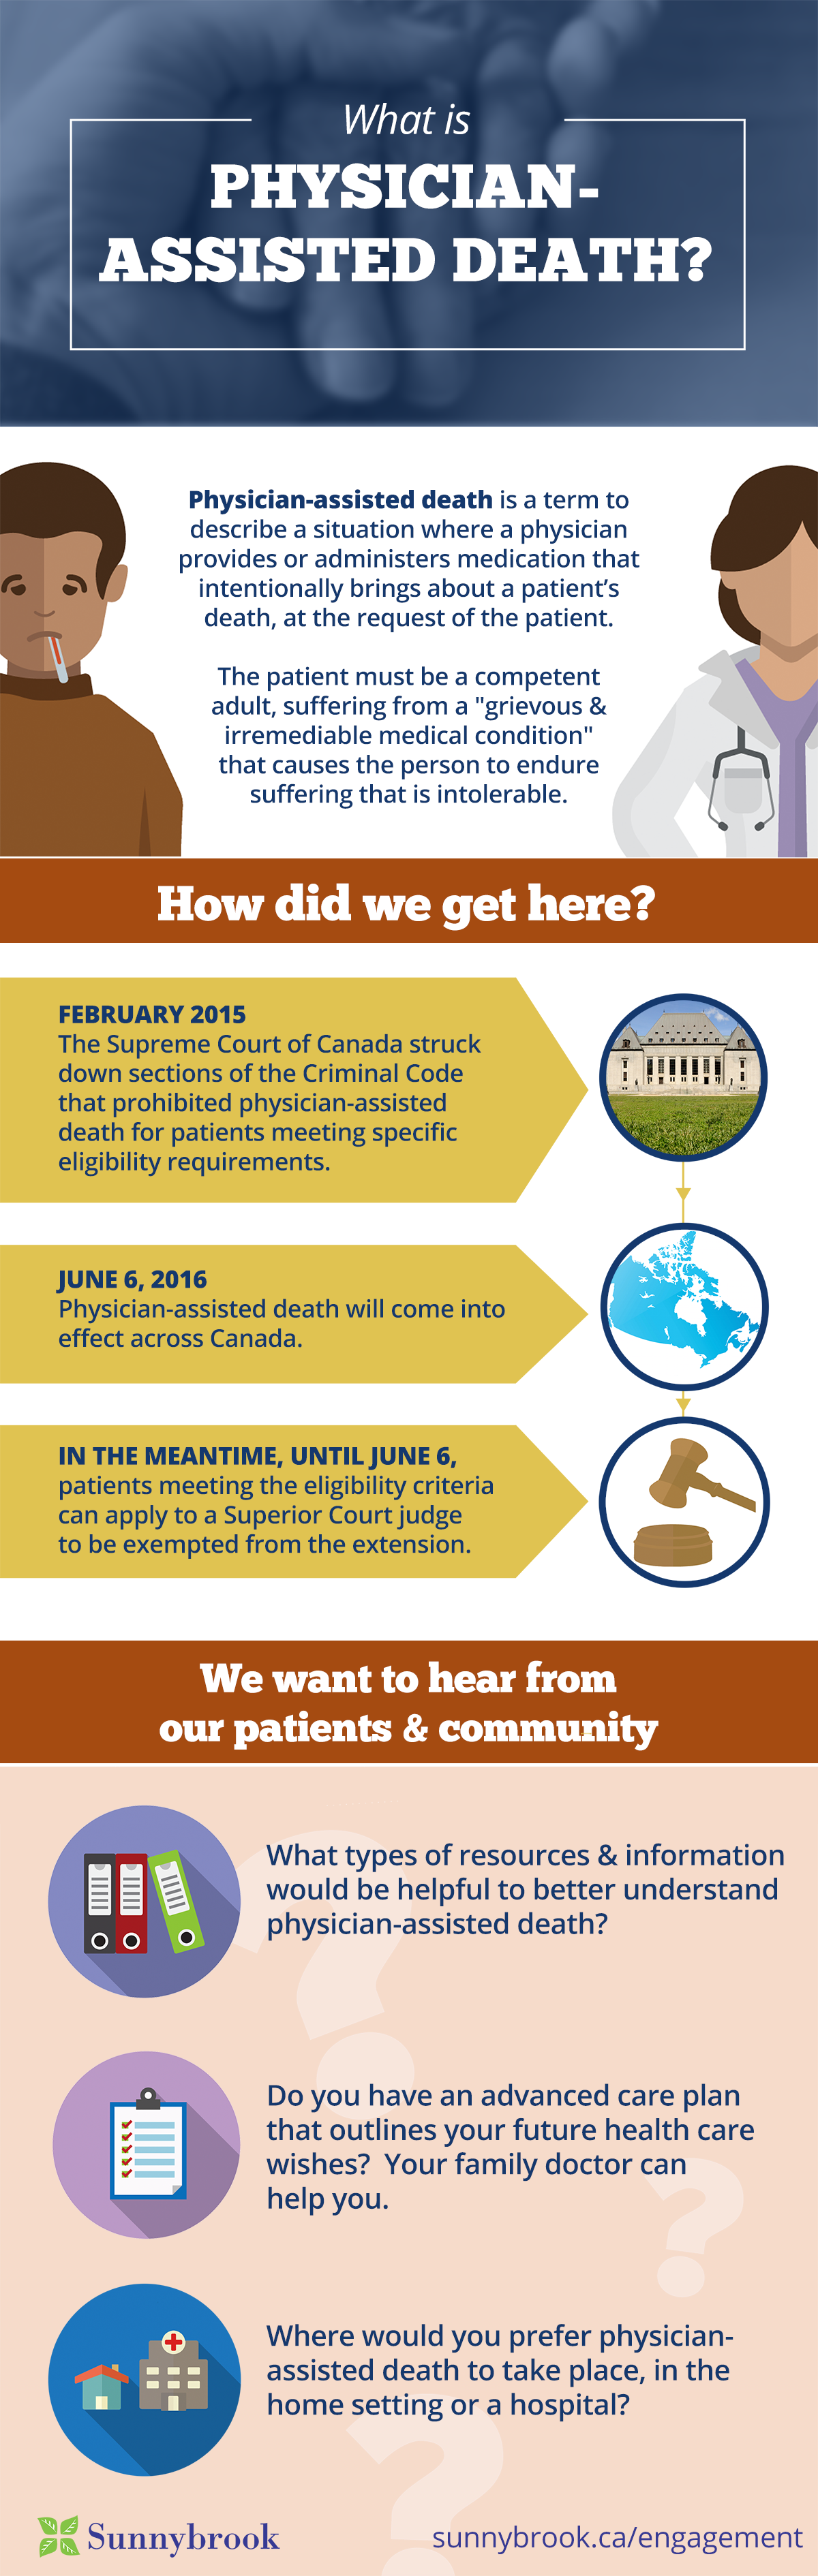 Infographic: What is physician-assisted death? View the text version below